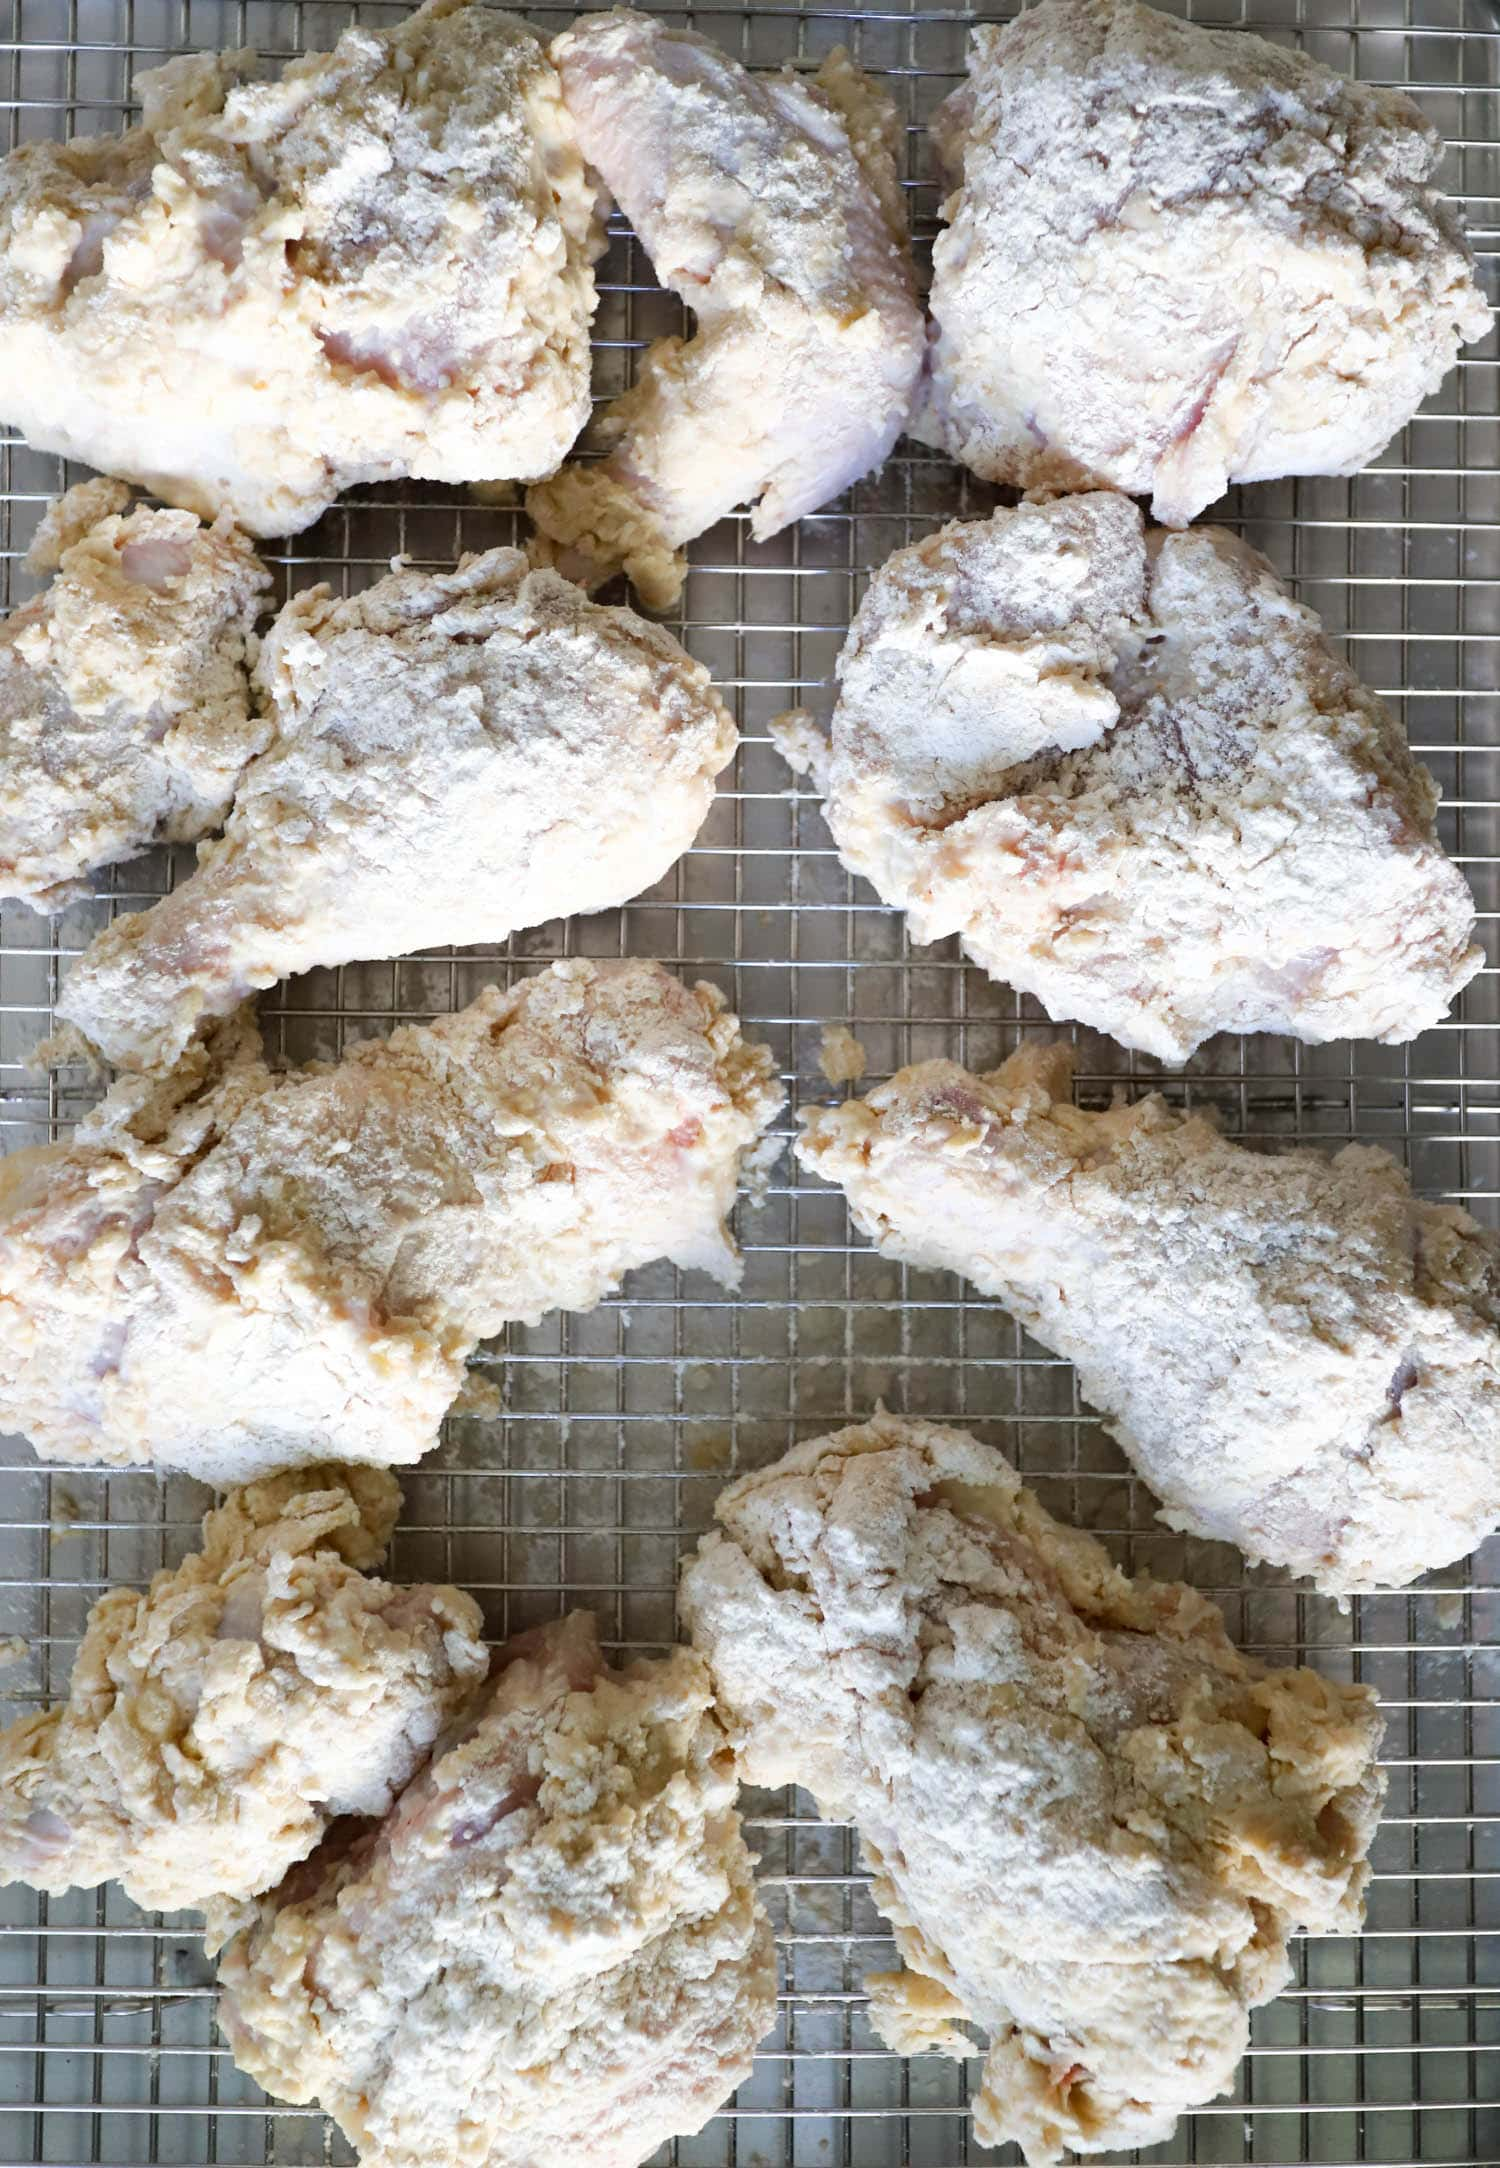 uncooked battered chicken on wire baking rack